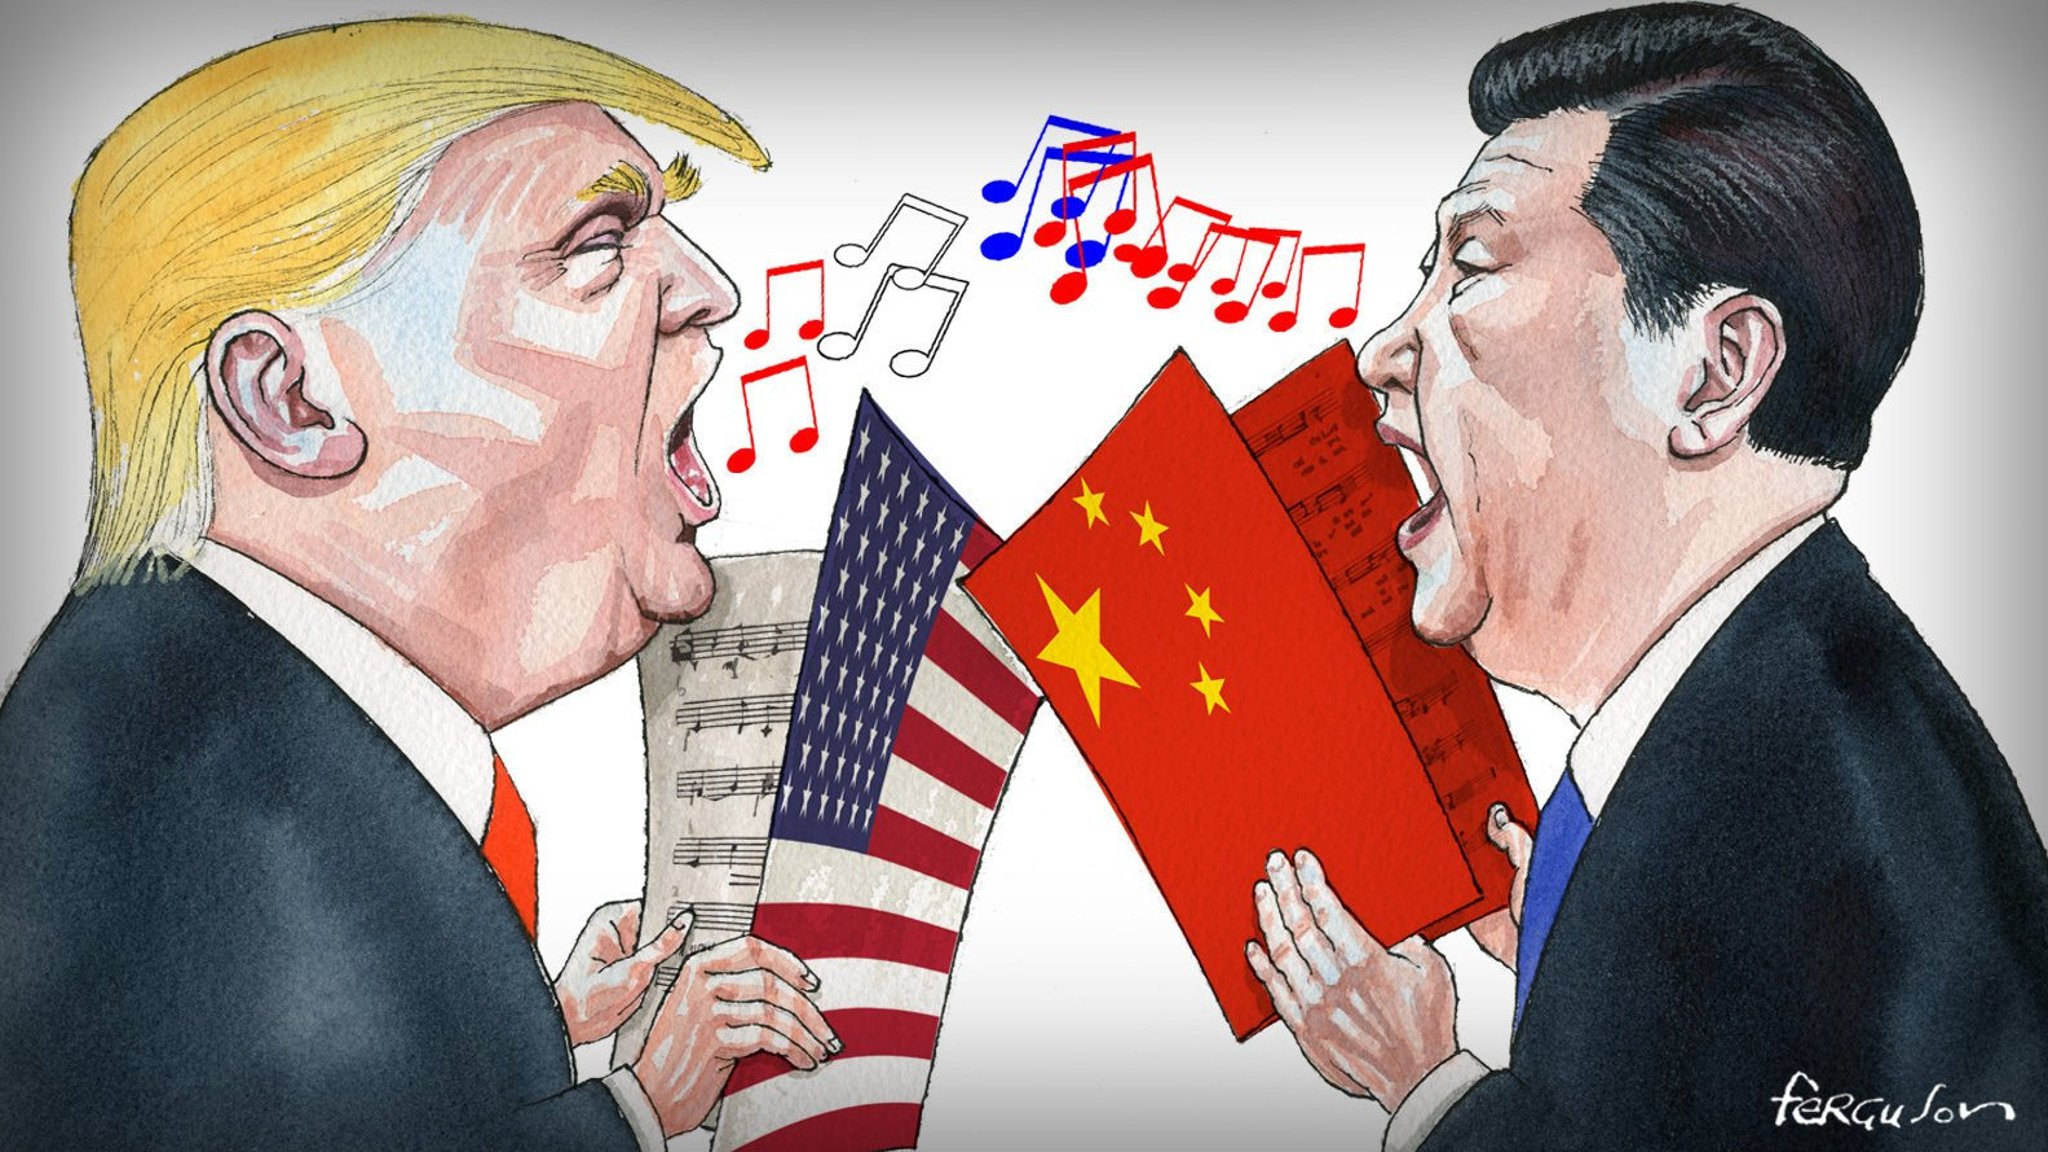 Trump, Xi and the siren song of nationalism